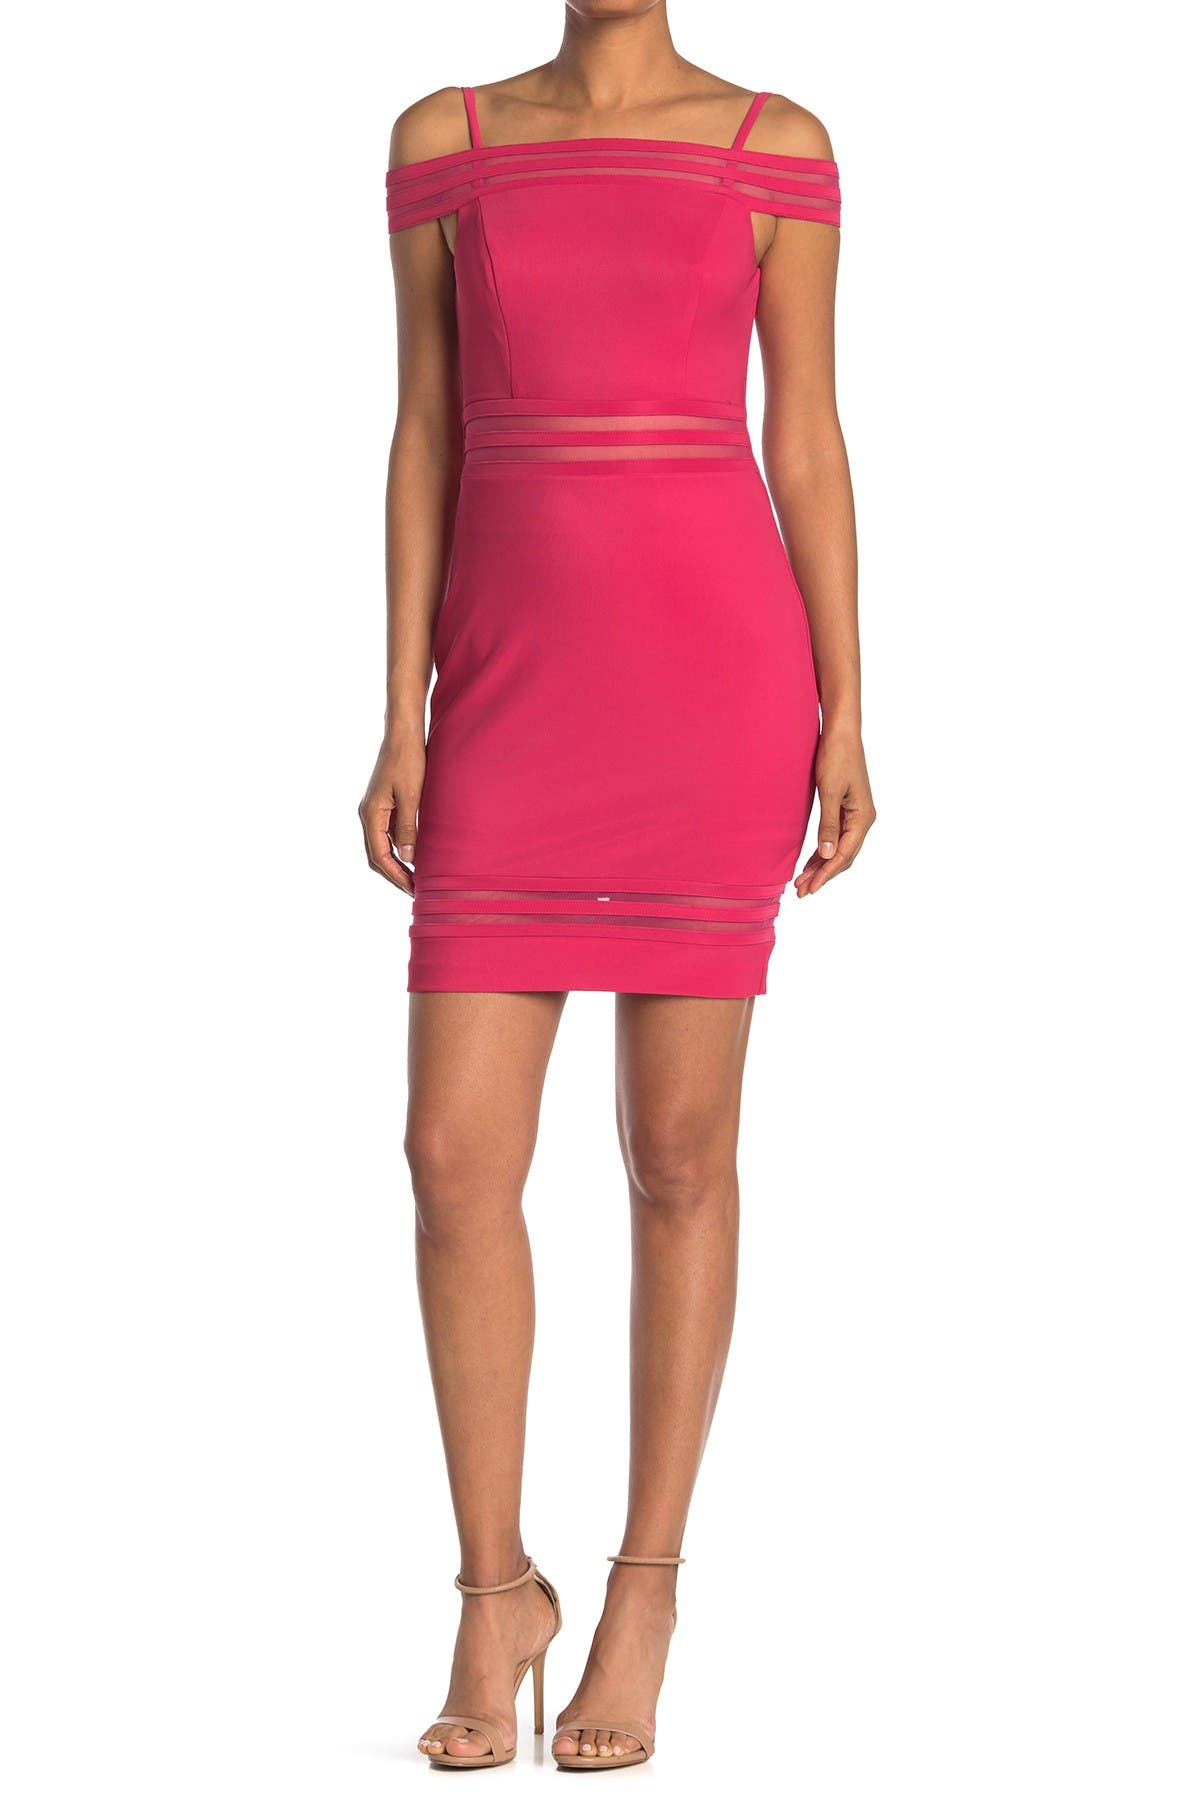 Image of GUESS Off-The-Shoulder Mini Dress